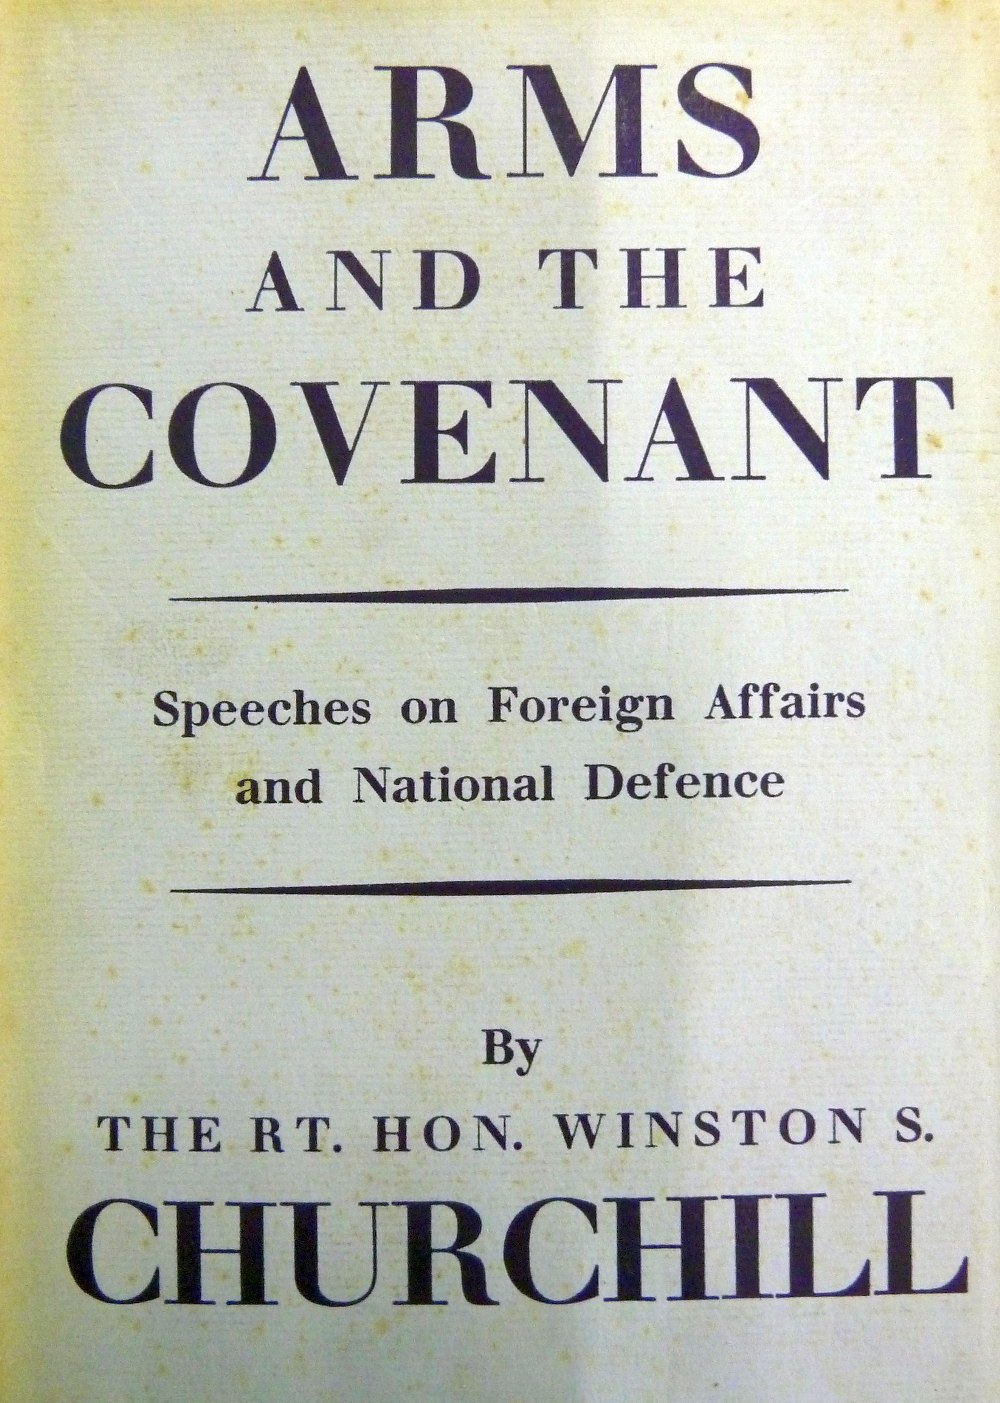 Lot 129 - CHURCHILL, RT. HON. WINSTON S. Arms and Covenant. Speeches on Foreign Affairs and National